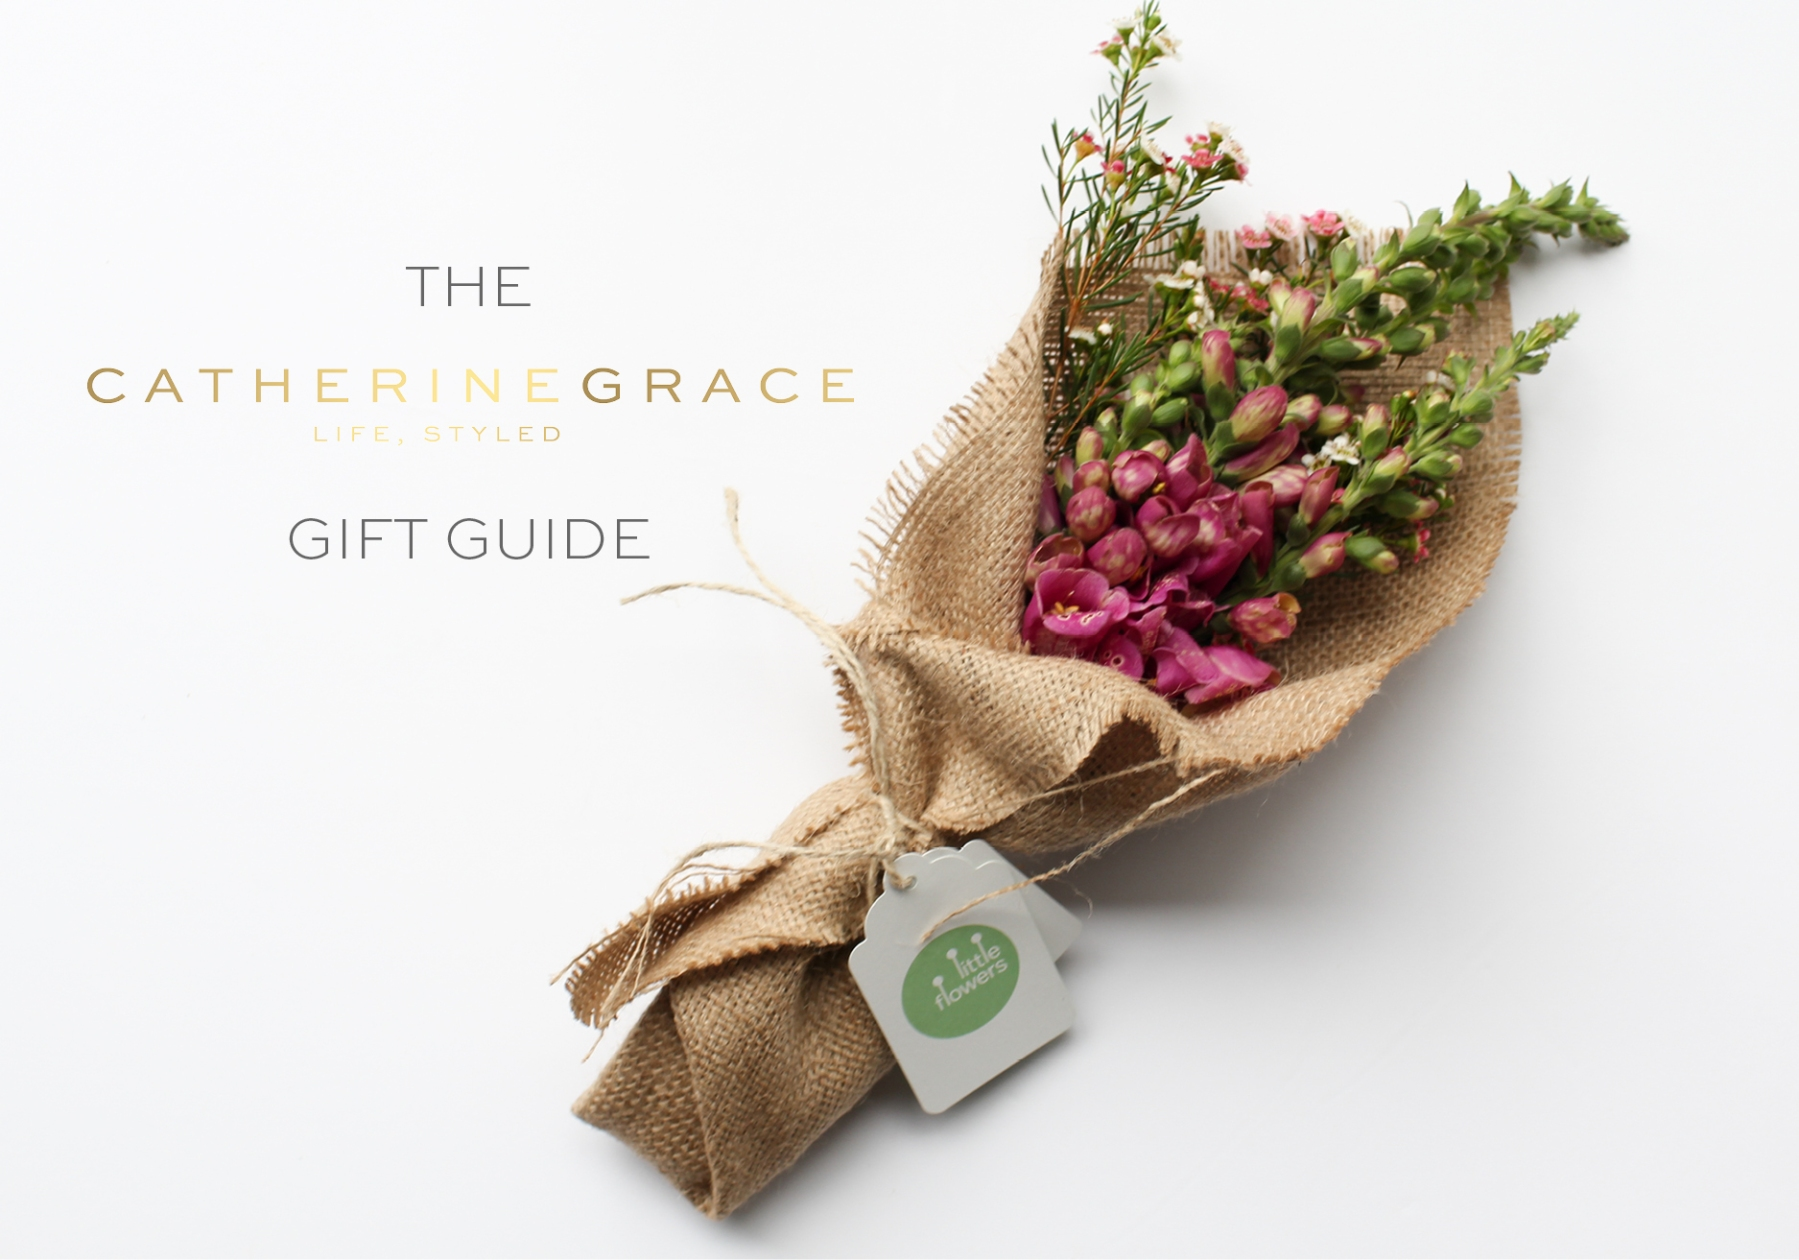 The CATHERINEGRACE gift guide | www.catherinegrace.com.au